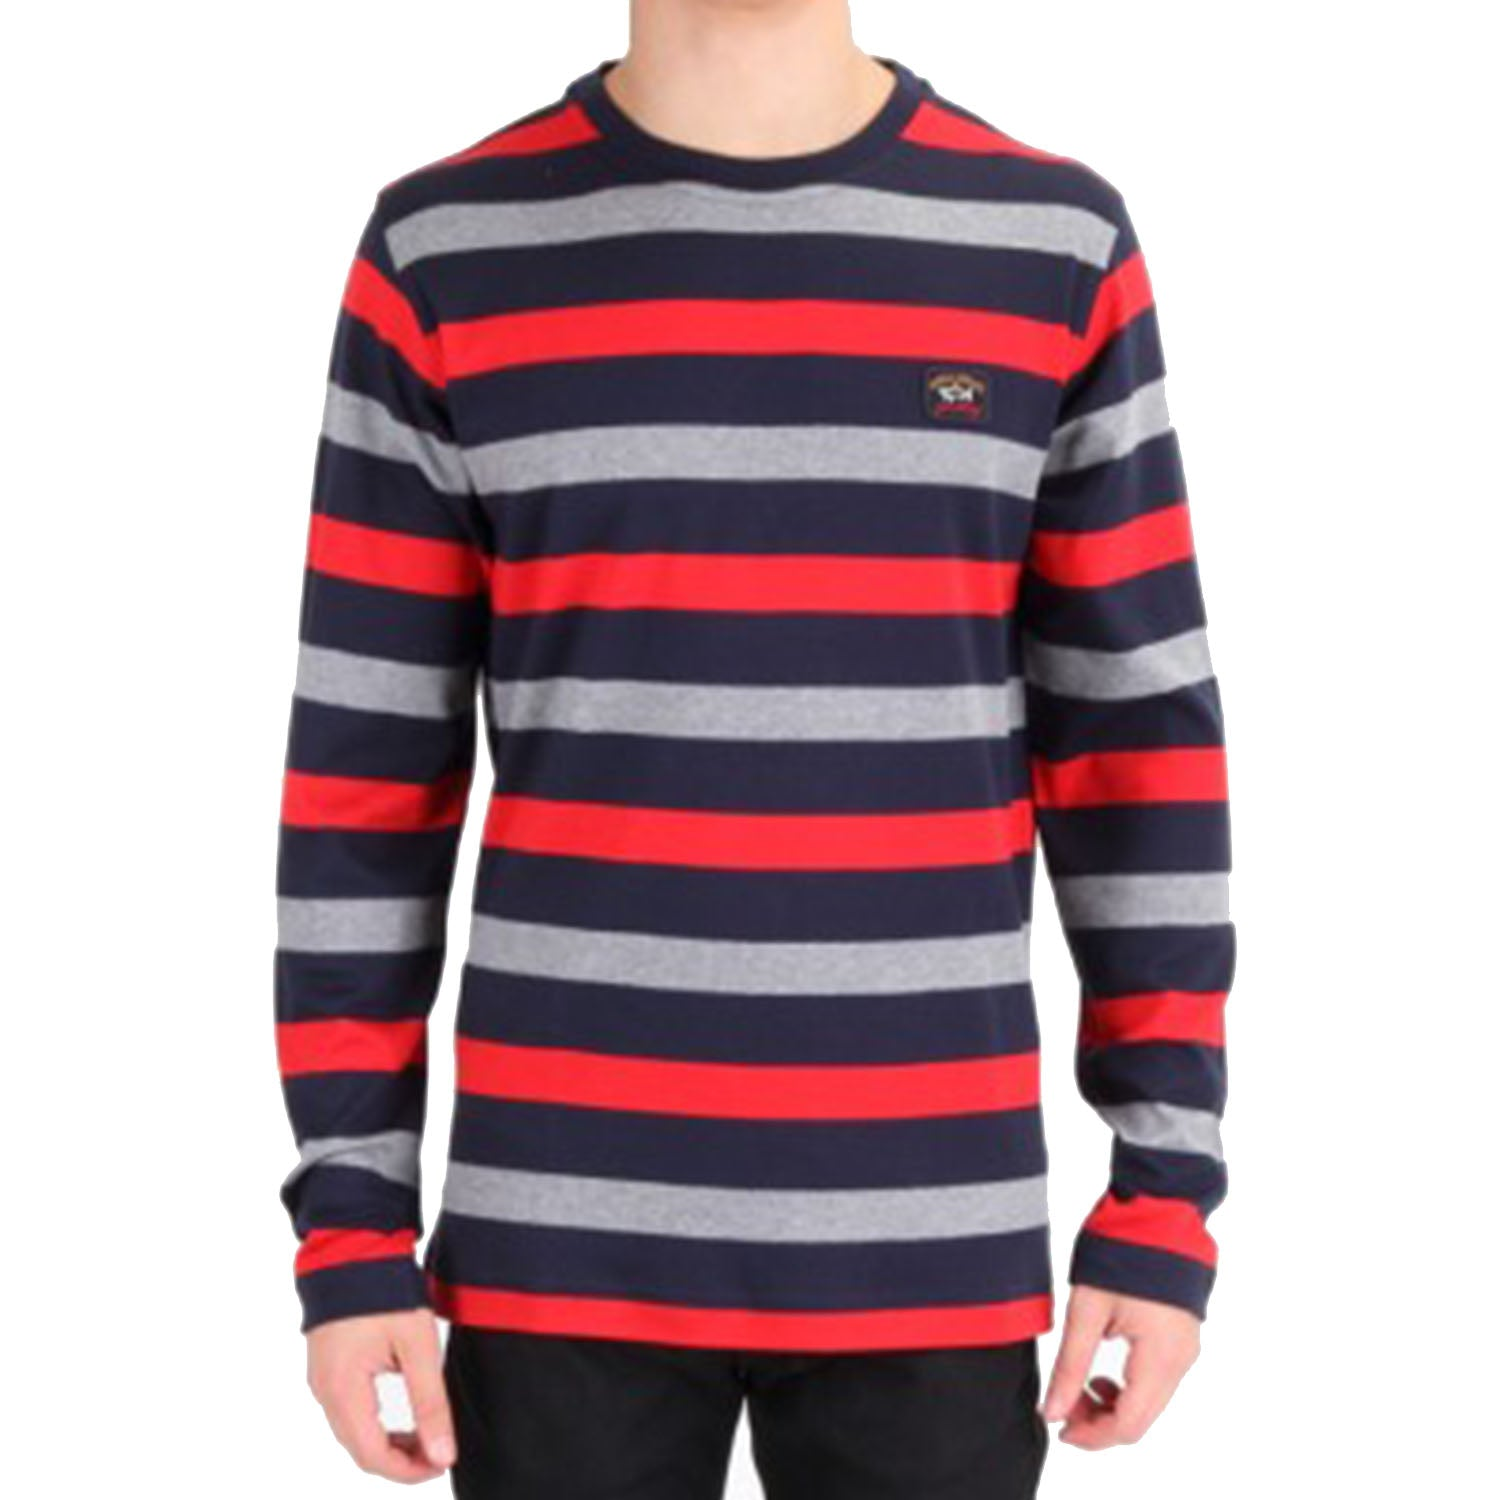 Paul & Shark Striped Long Sleeves T-Shirt